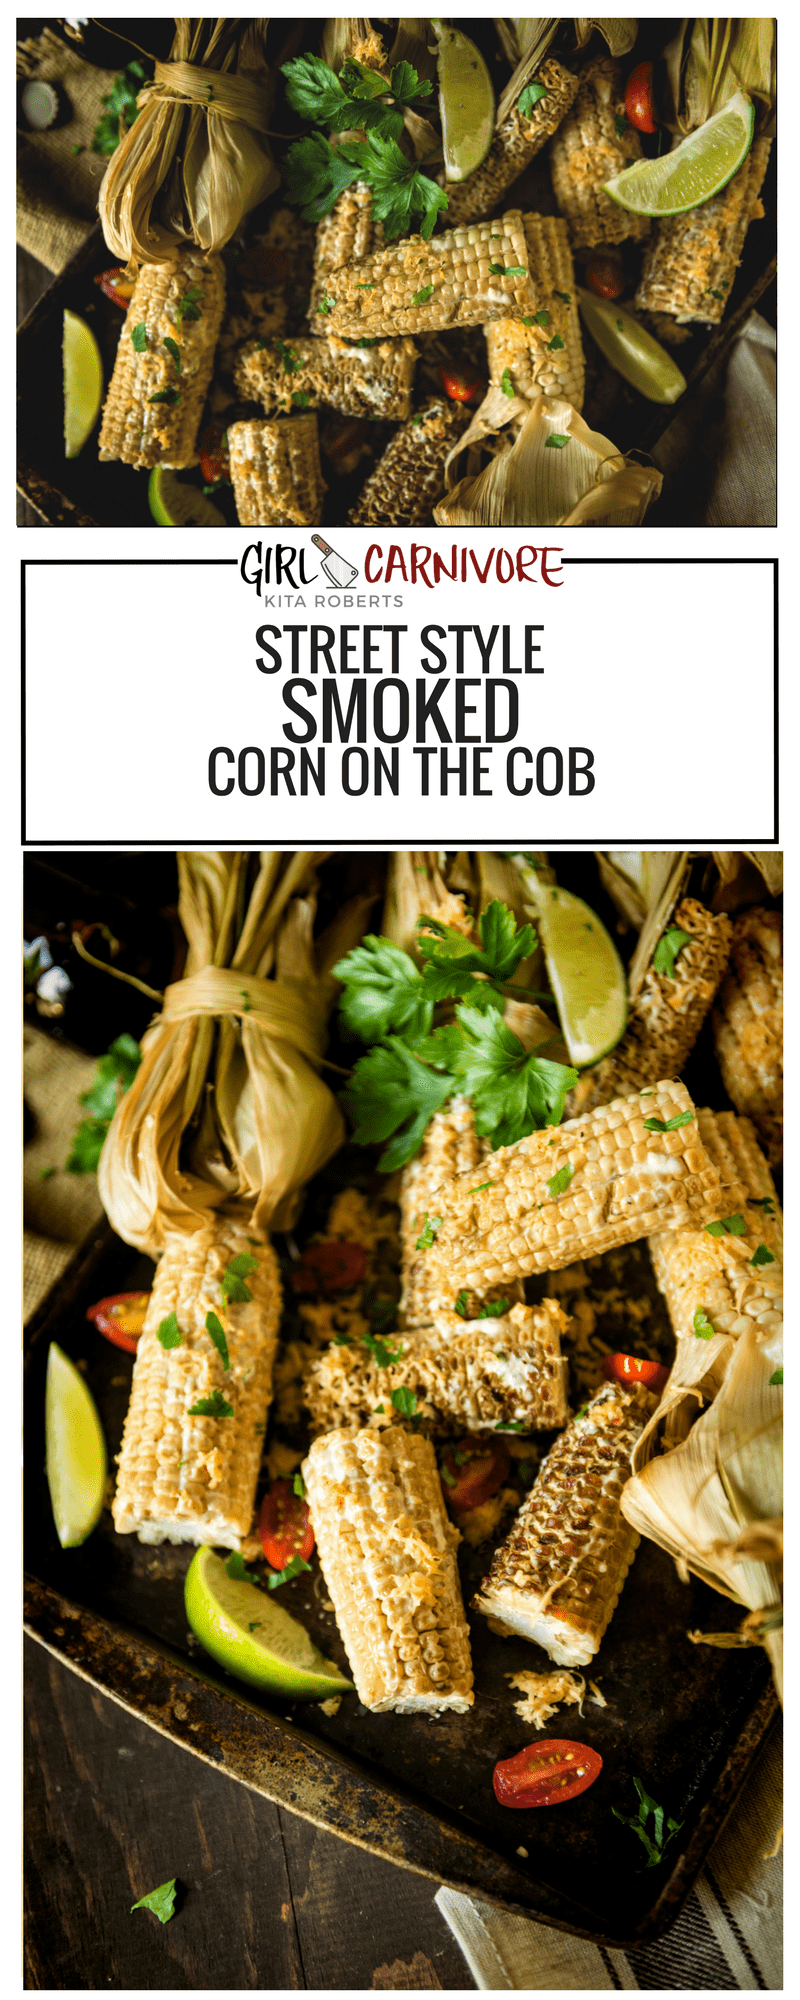 Street Style Smoked Corn on the Cob | The perfect flair for your next barbecue side dish.